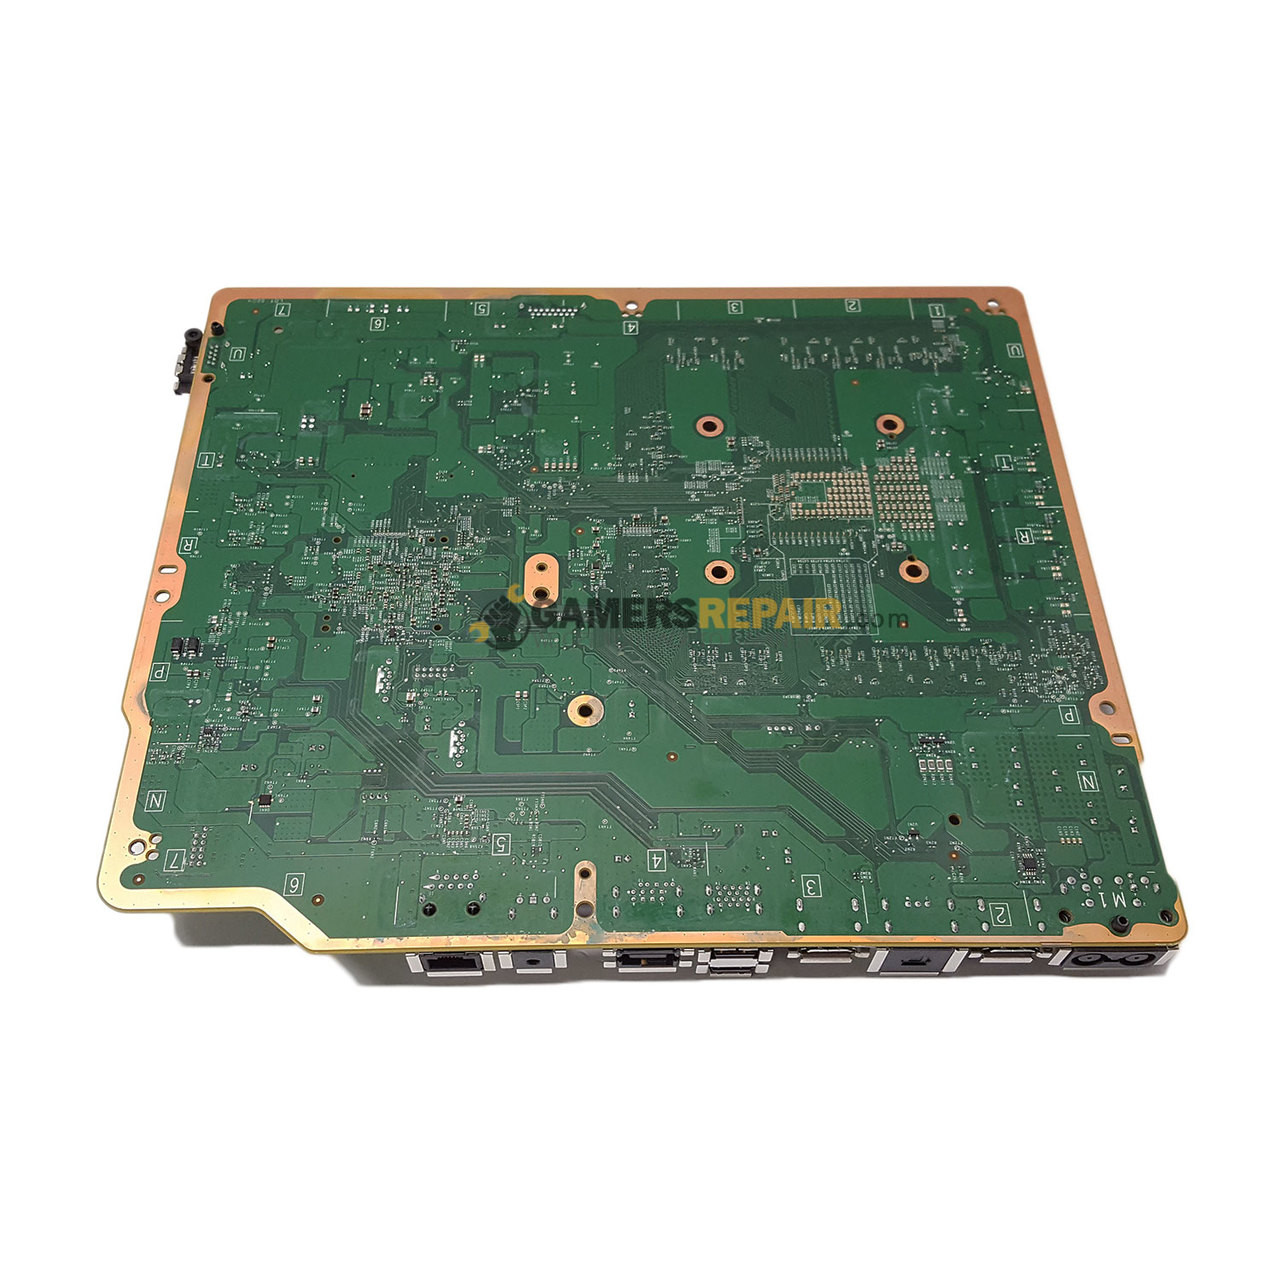 OEM Motherboard (120413) & Drive PCB for Xbox ONE